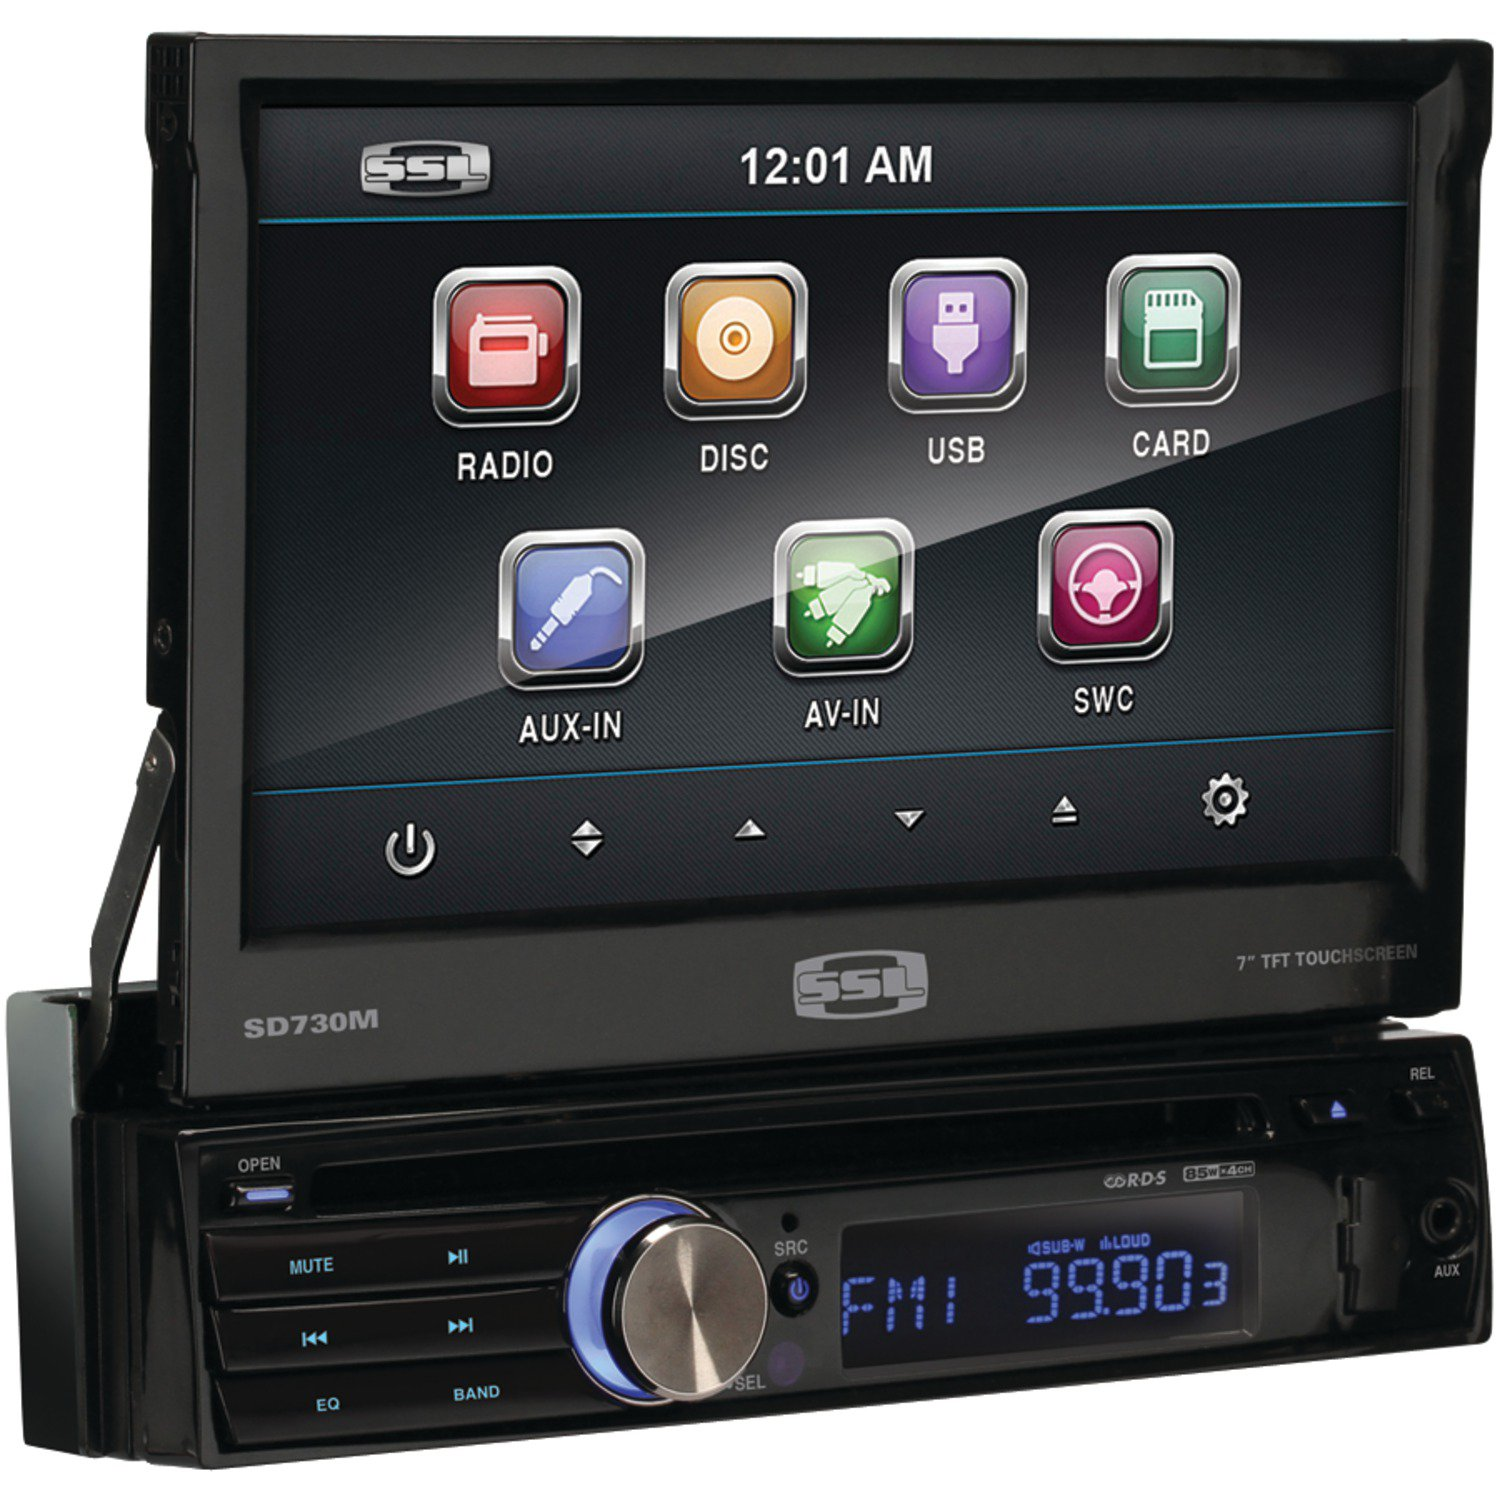 SOUNDSTORM SD730M 7 Inch. Single-DIN In-Dash Motorized Flip-Out Touchscreen Multimedia Receiver (Without Bluetooth(R))